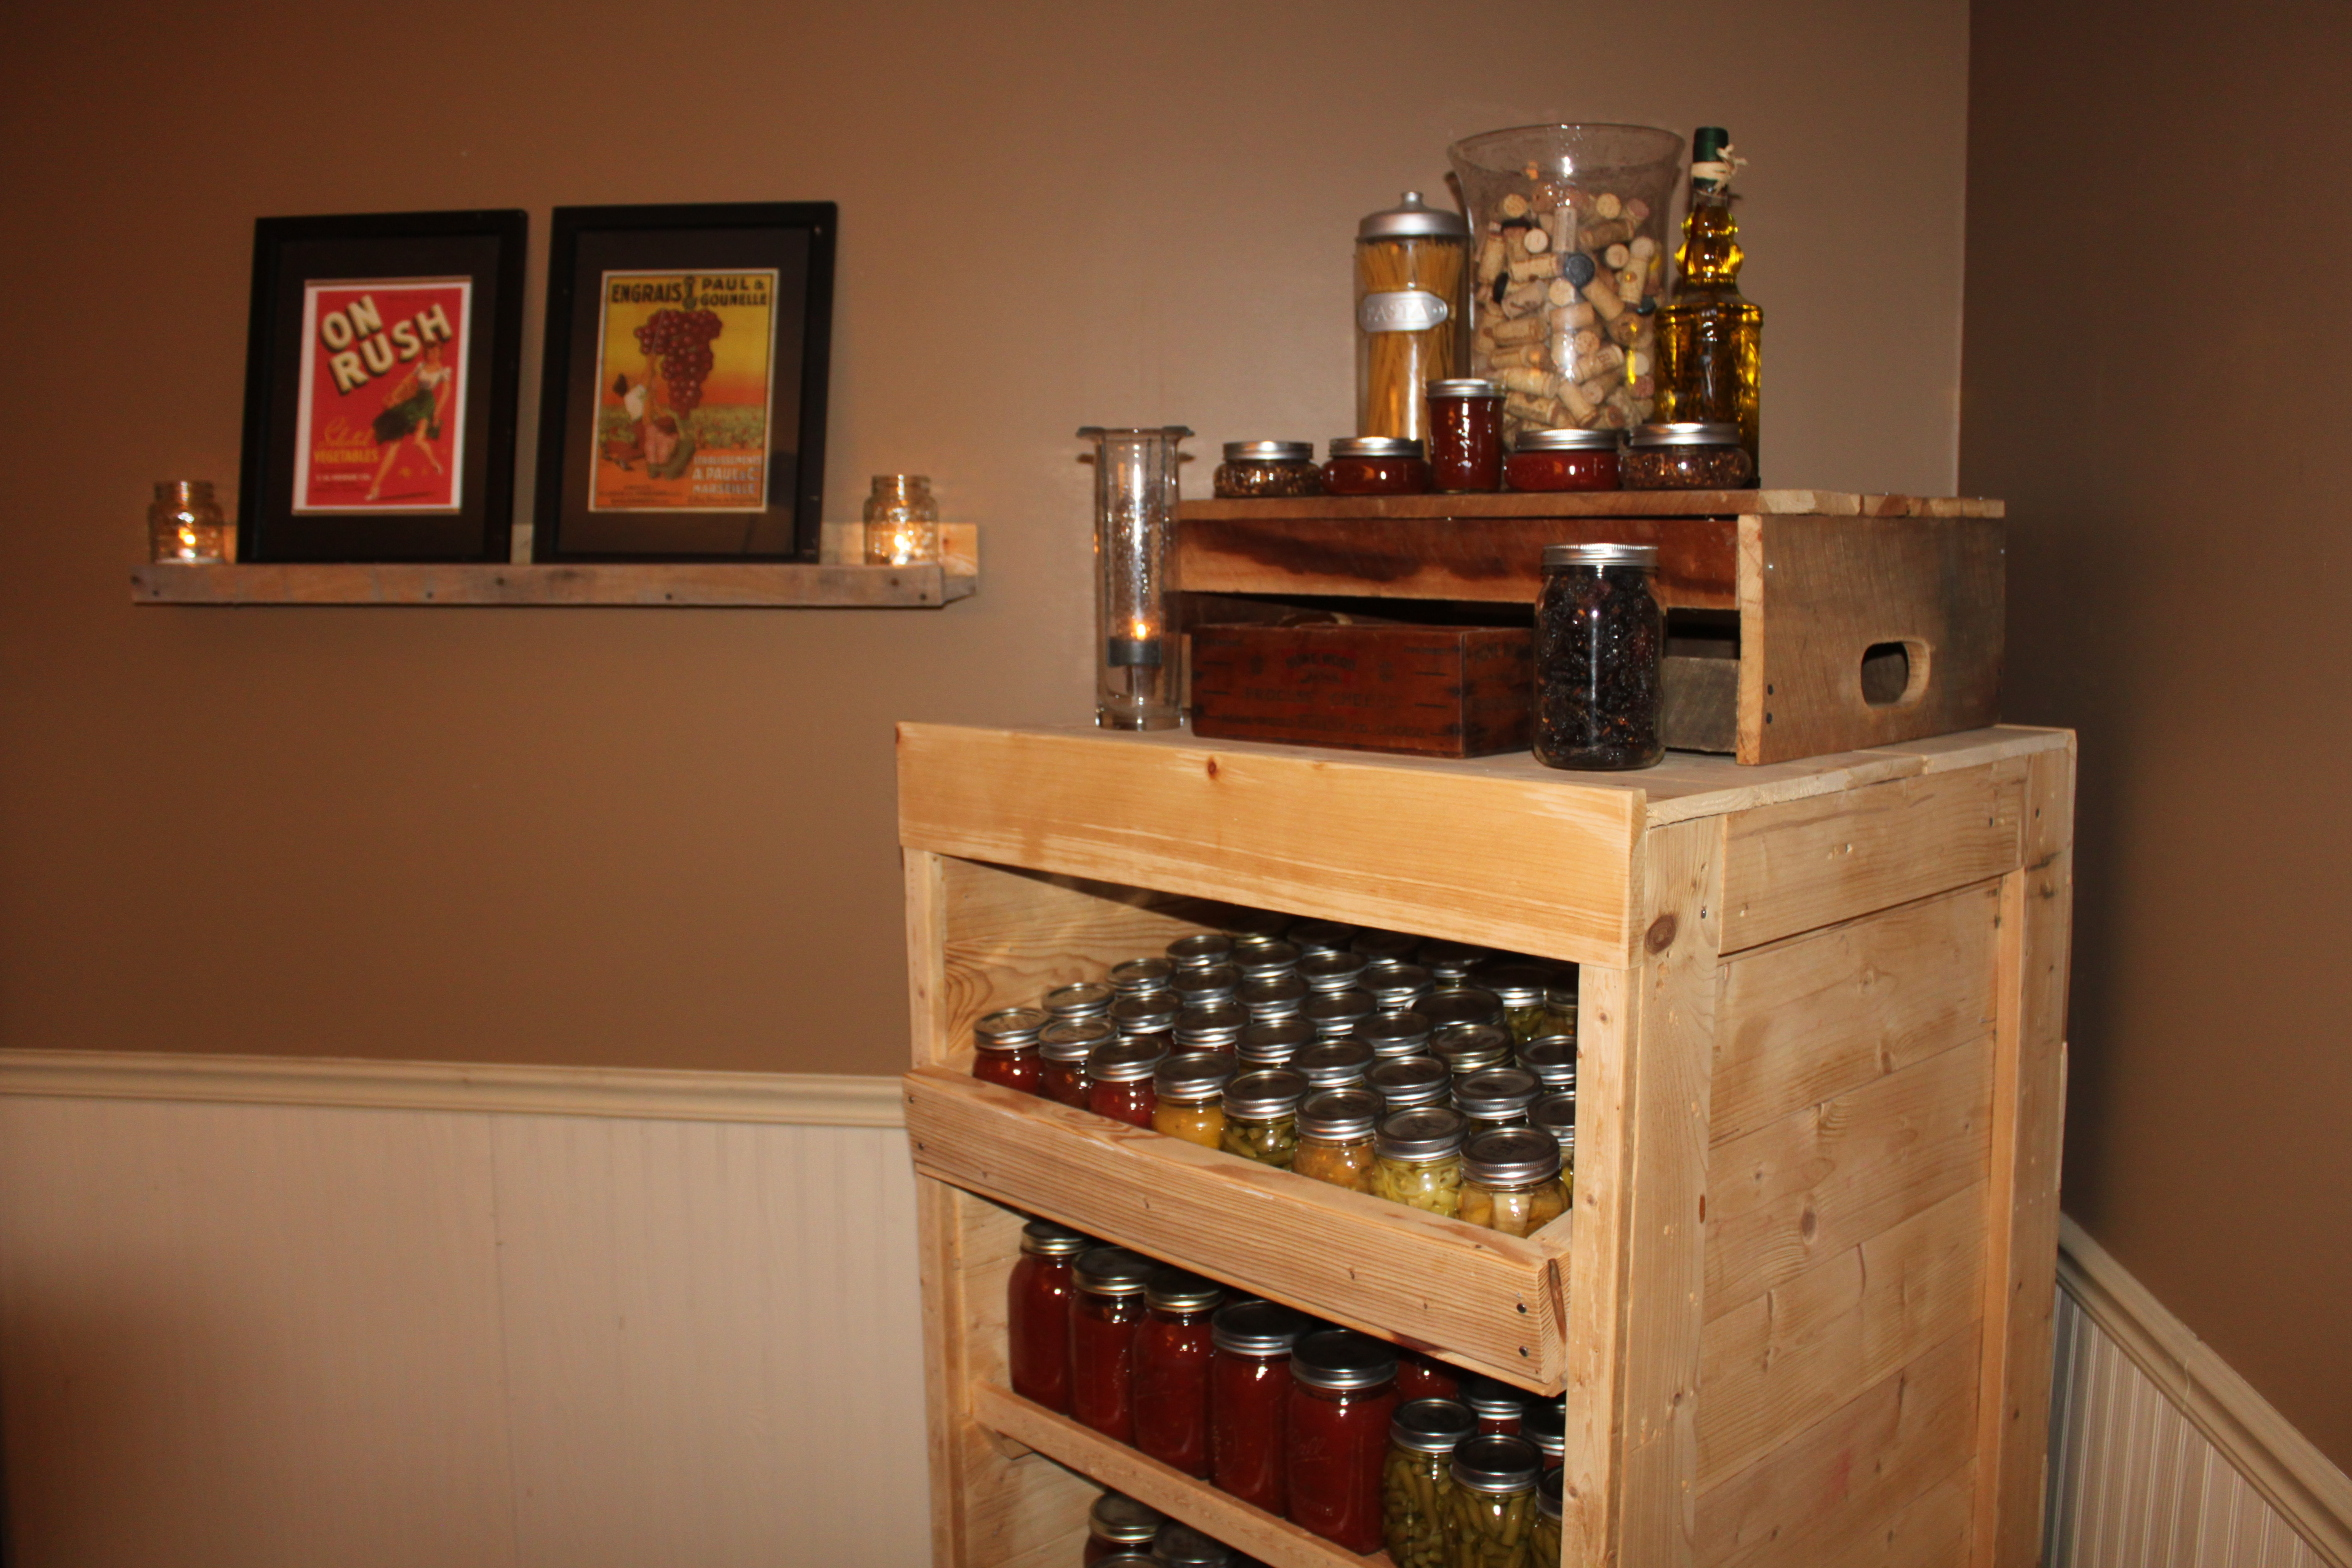 old pallet furniture. VIEW IN GALLERY Canning Pantry Cupboard Built From Pallets Old Pallet Furniture